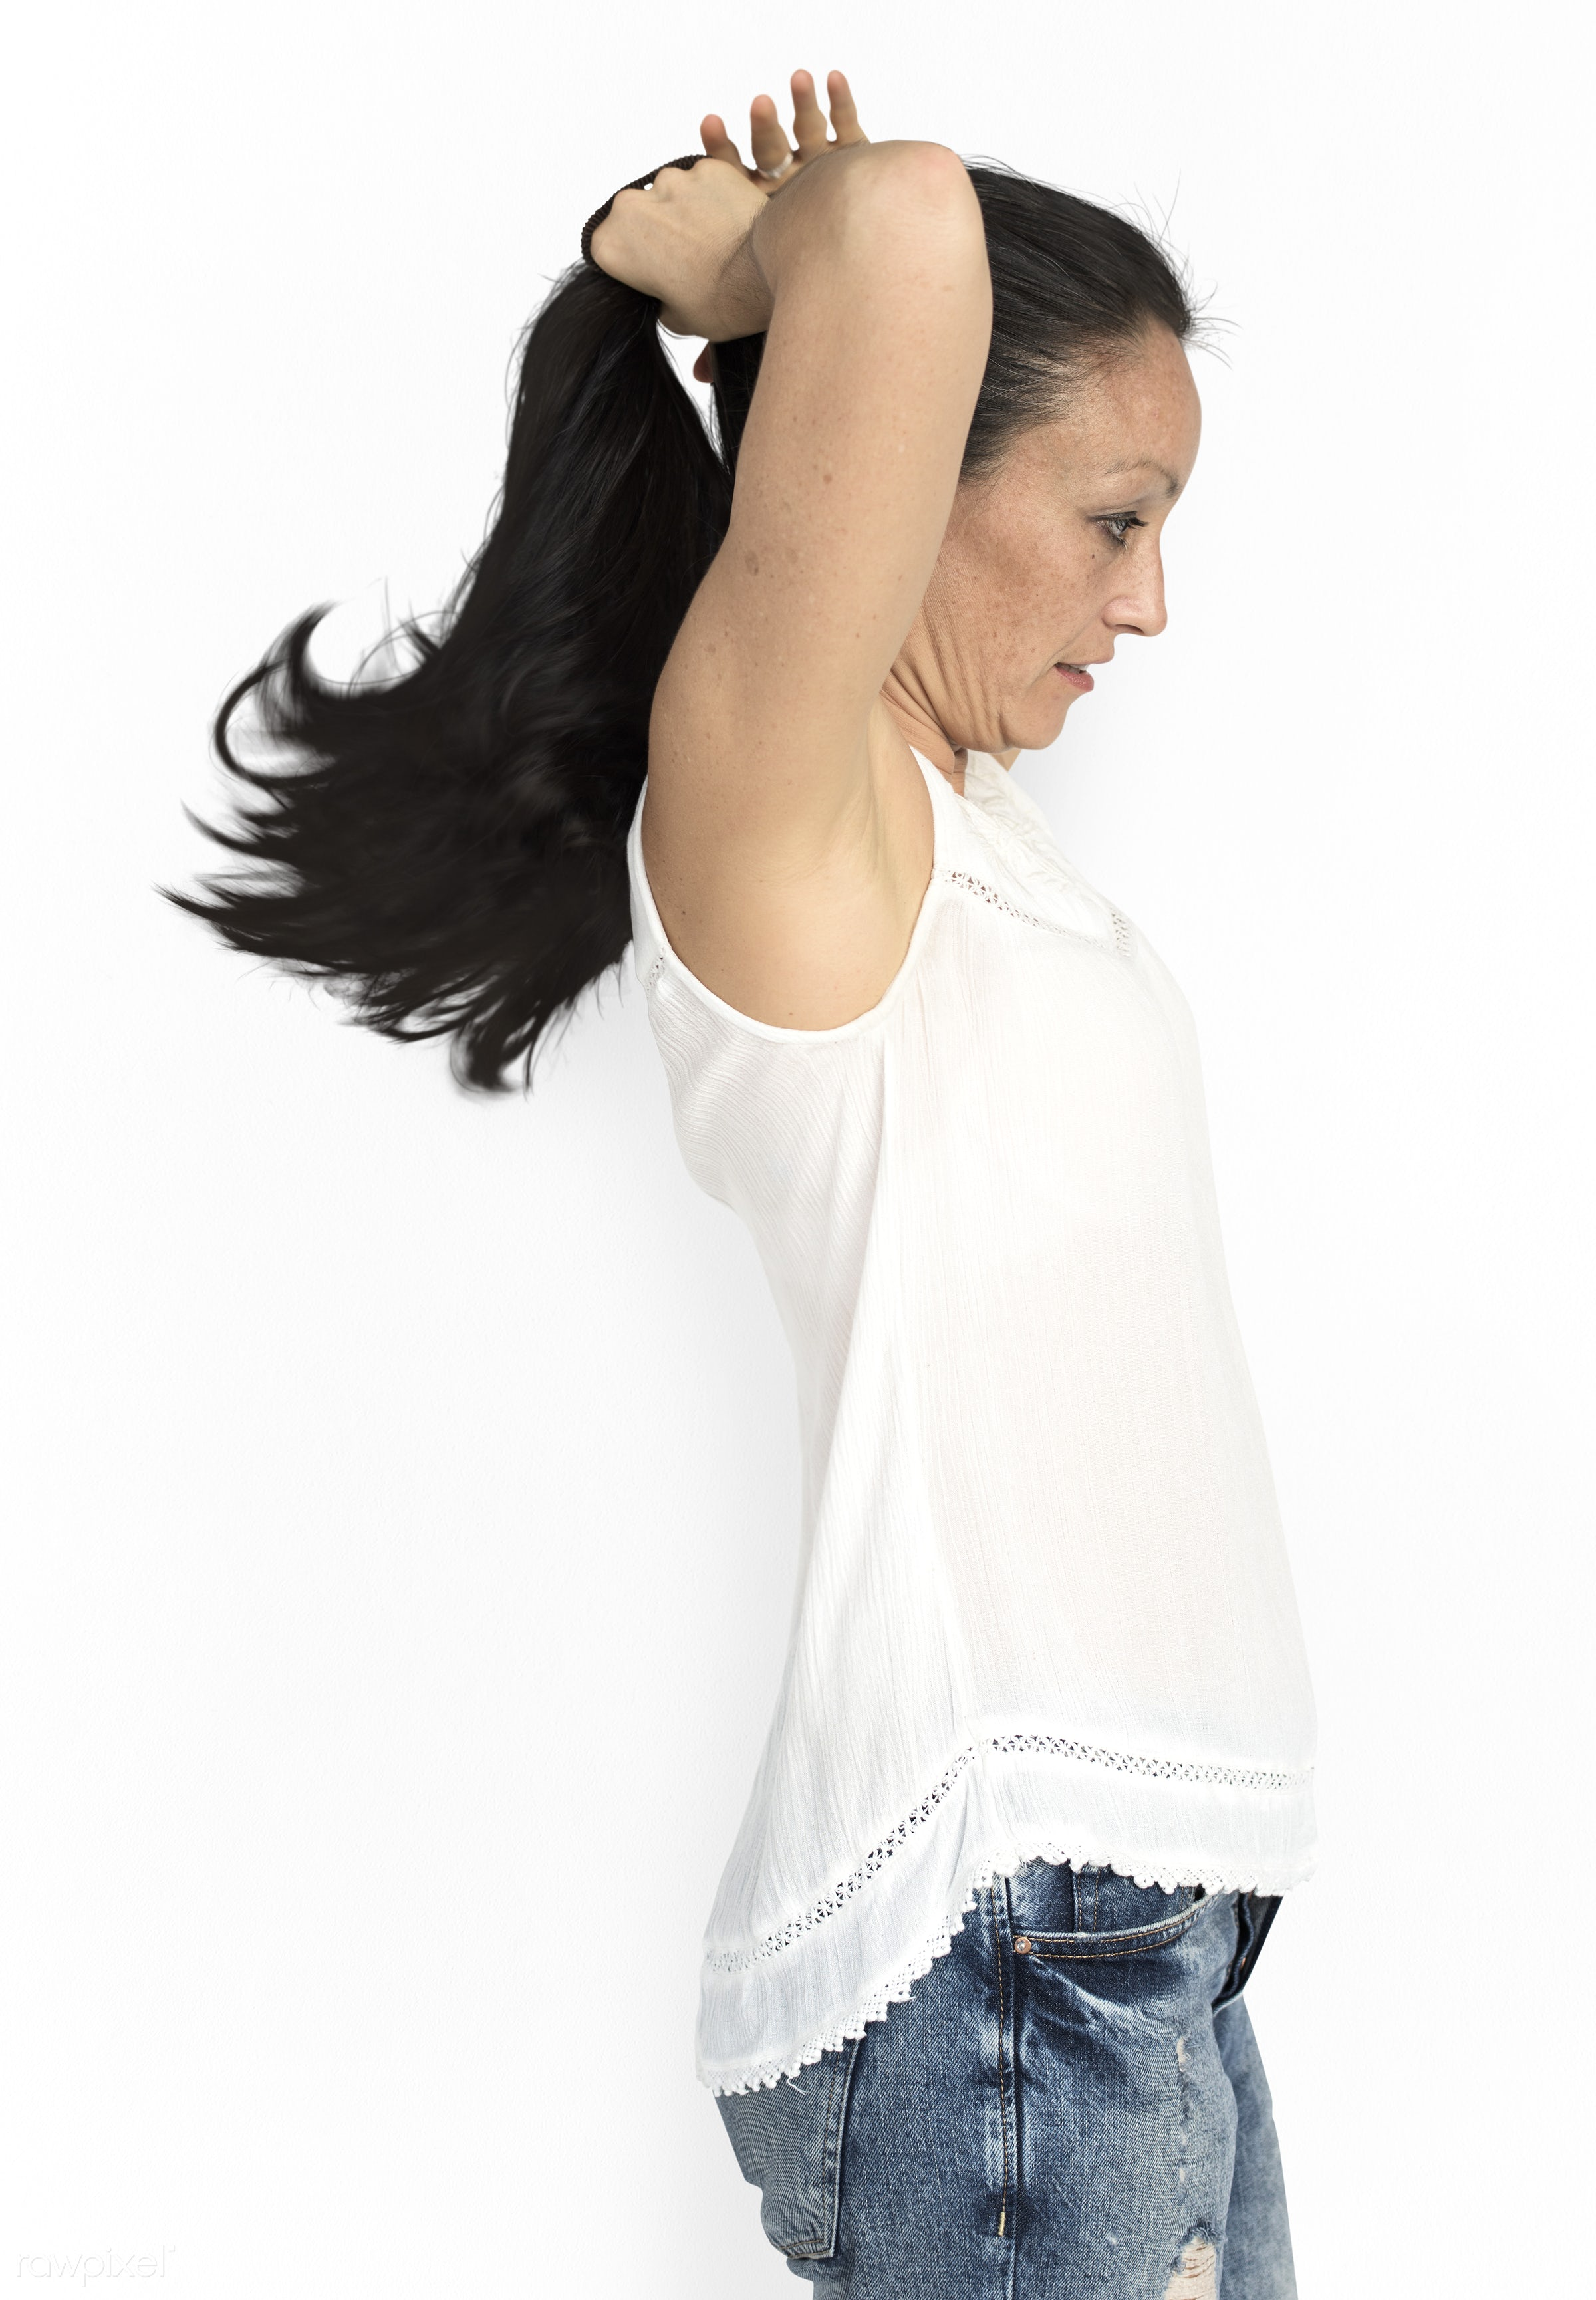 studio, model, person, people, race, style, solo, woman, lifestyle, casual, feminism, hair, isolated, gesture, white, posing...